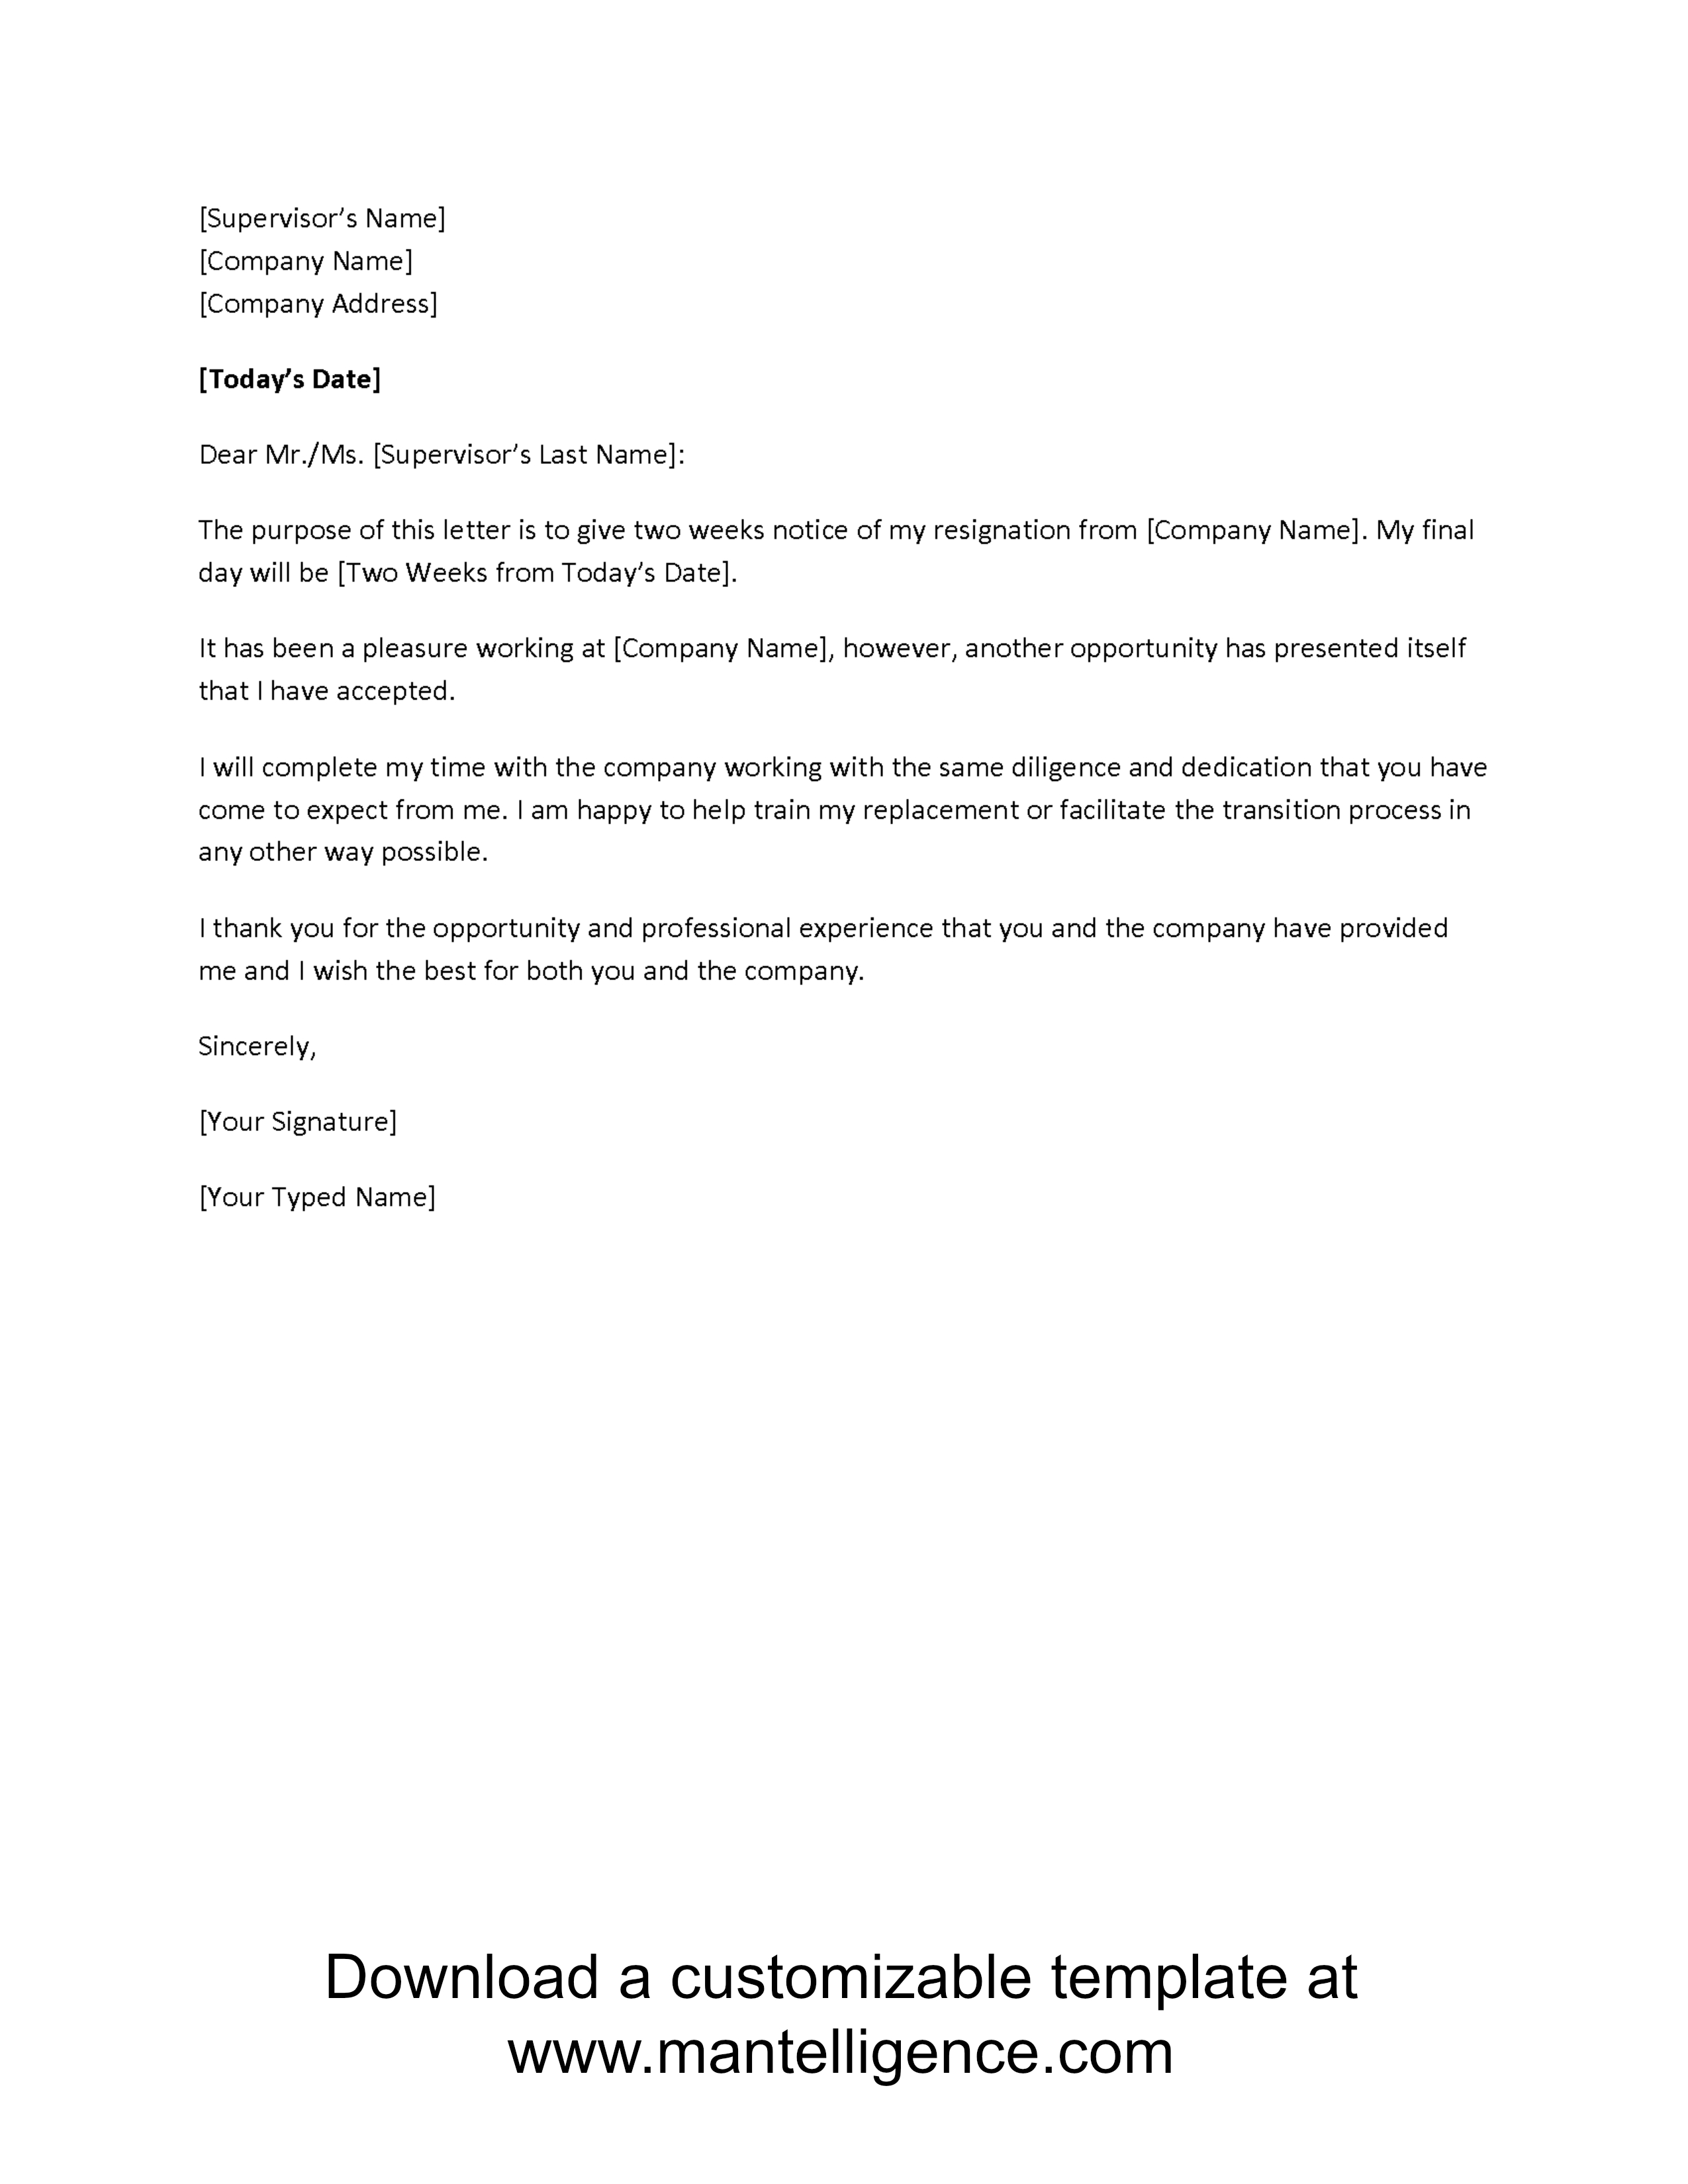 Letter Of Separation From Employer Template - 3 Highly Professional Two Weeks Notice Letter Templates